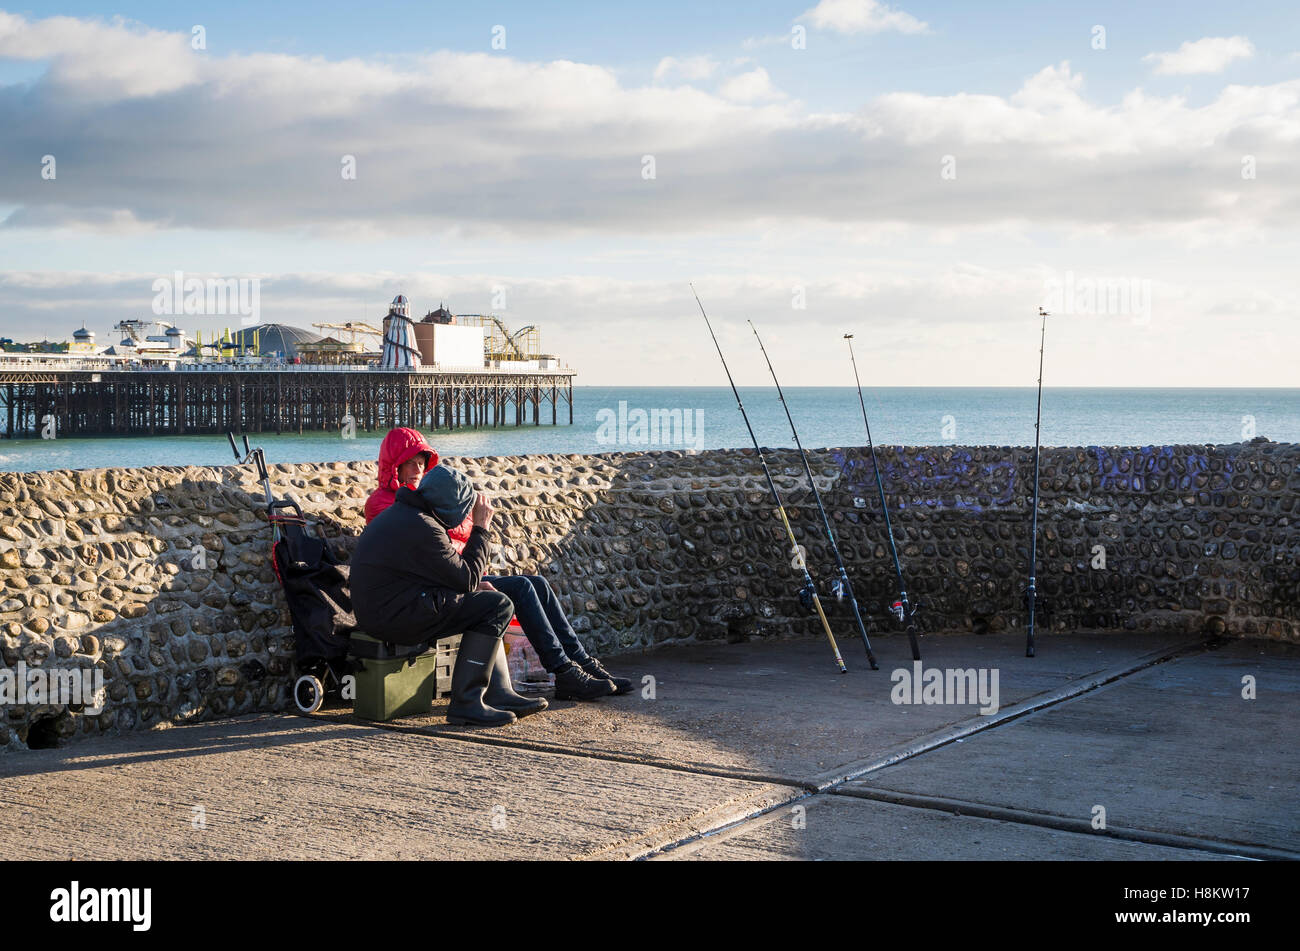 Fishermen with rods leaning up against the groyne wall at Brighton beach with the Palace Pier in the background. - Stock Image